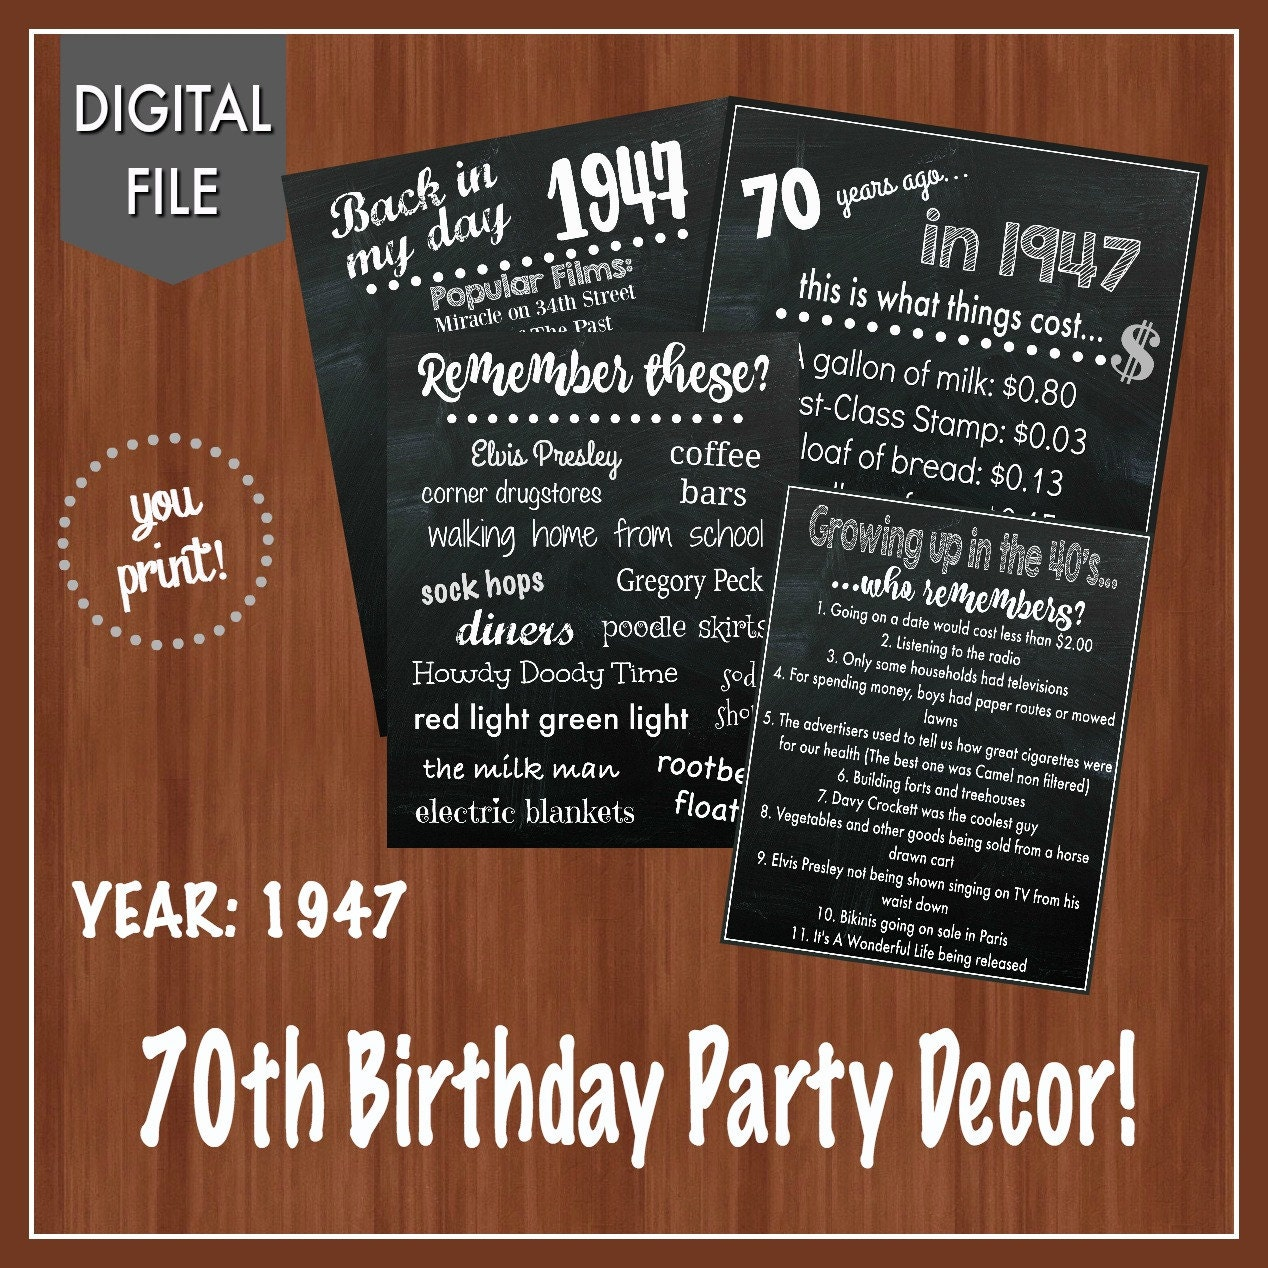 70th birthday party decor fun facts 40 39 s themed party for Decoration 70th birthday